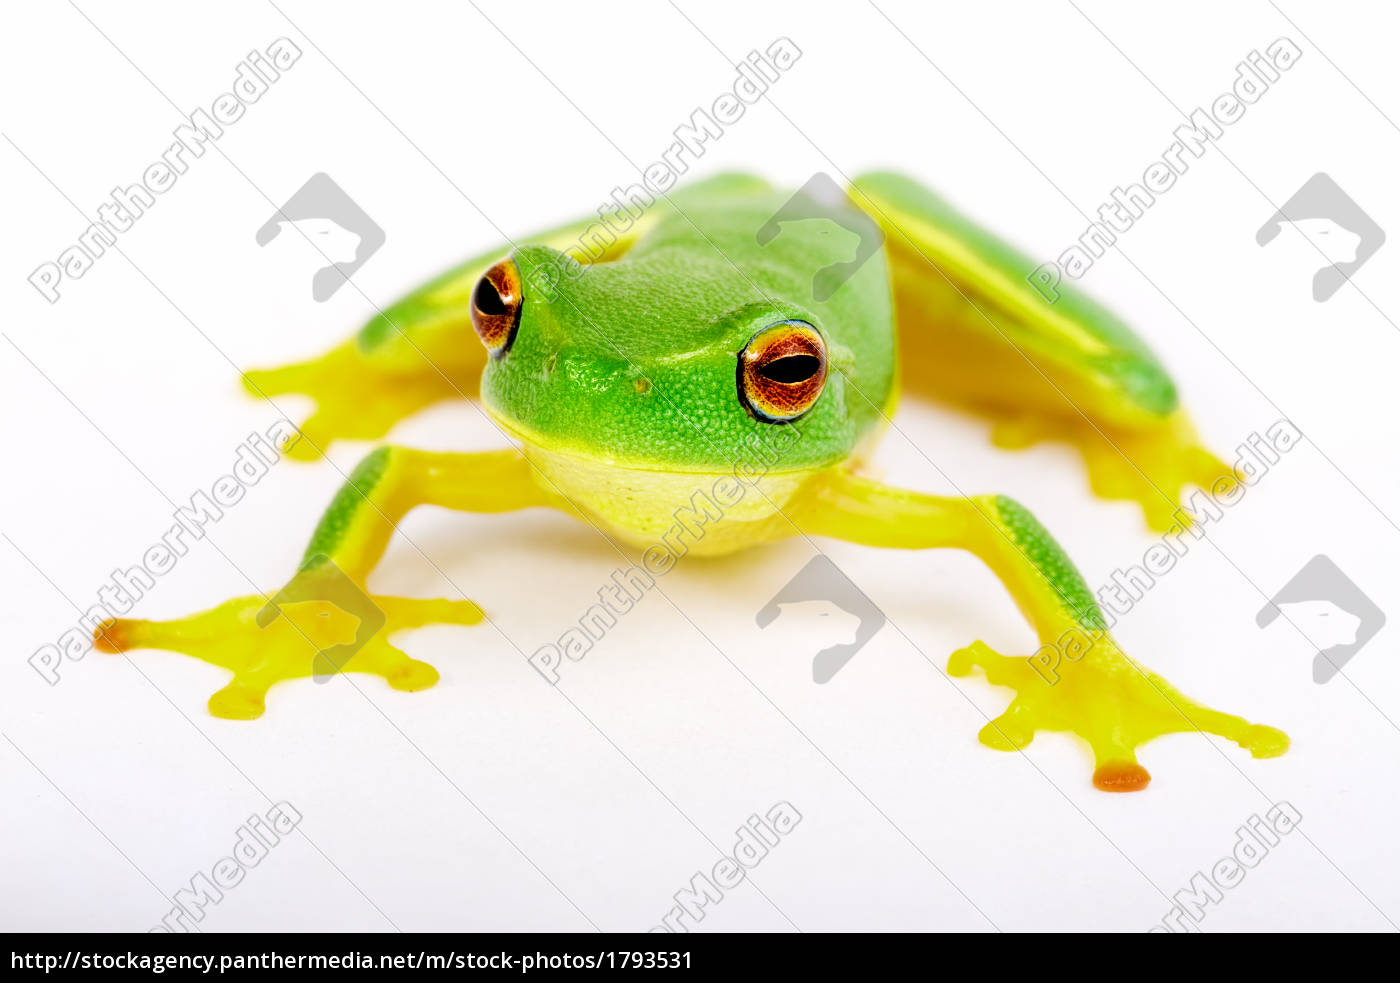 little, tree-frog, on, white, background - 1793531